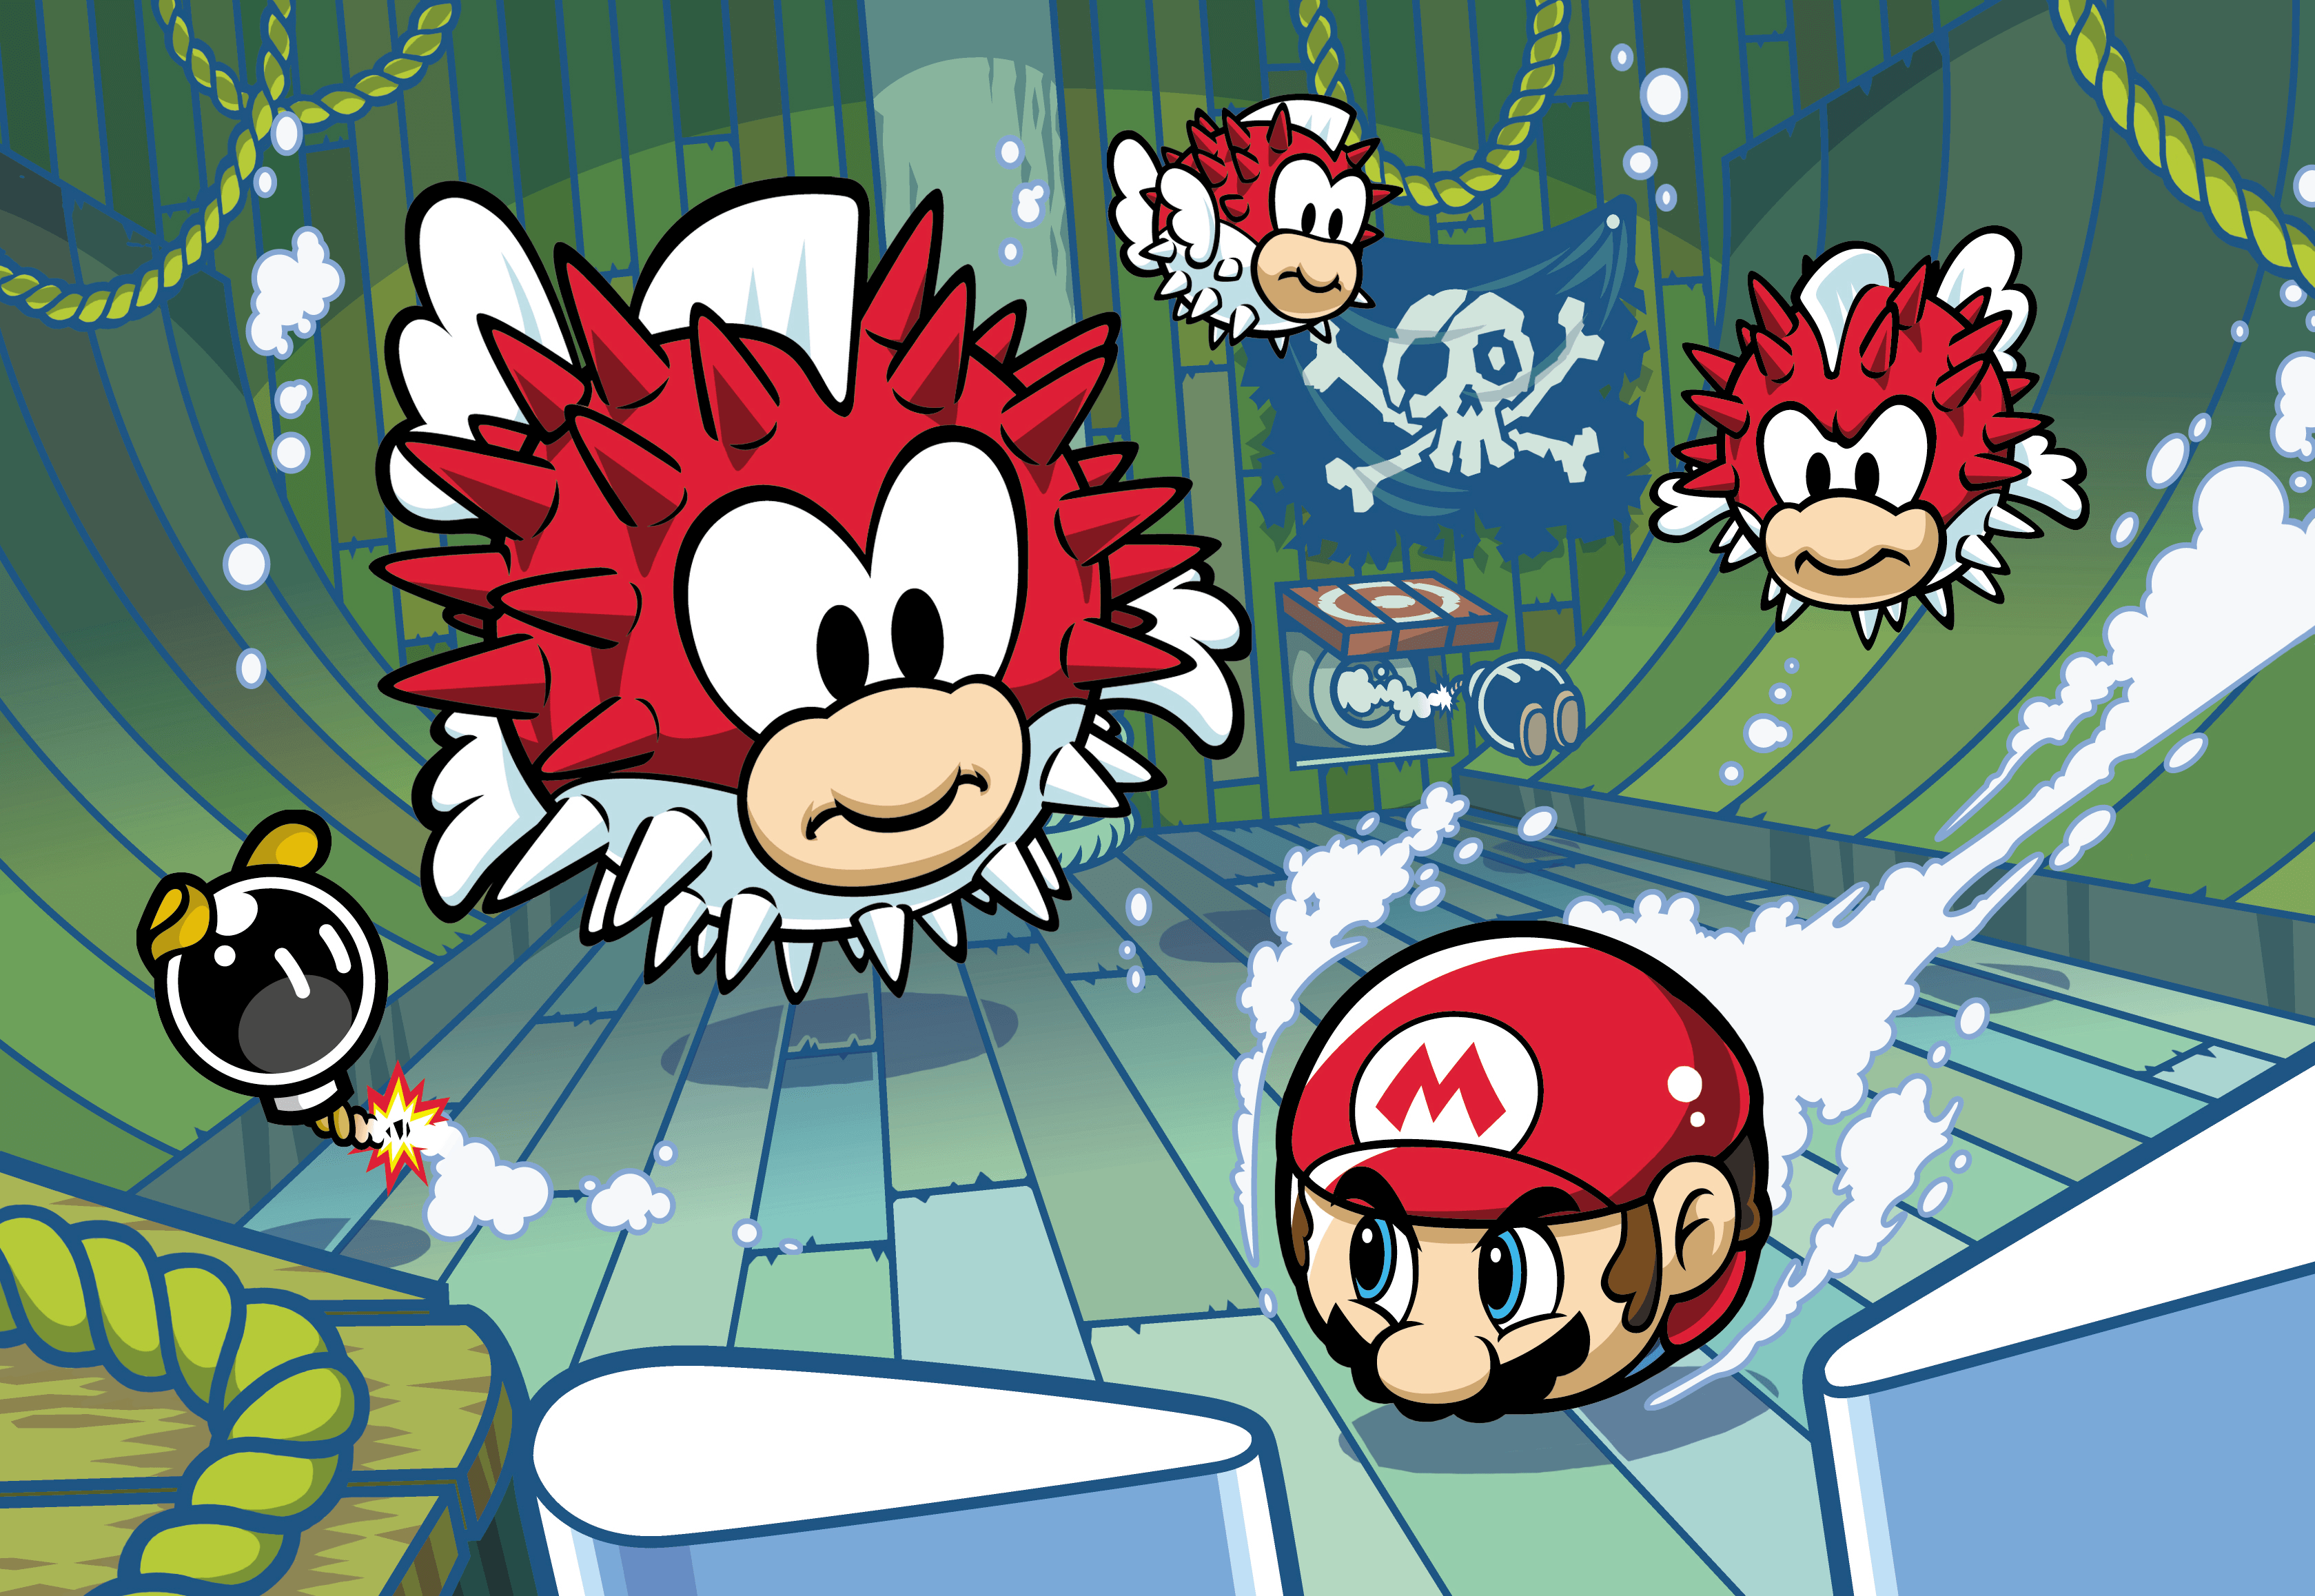 An artwork of Pinball Mario facing off vs Pufferfish